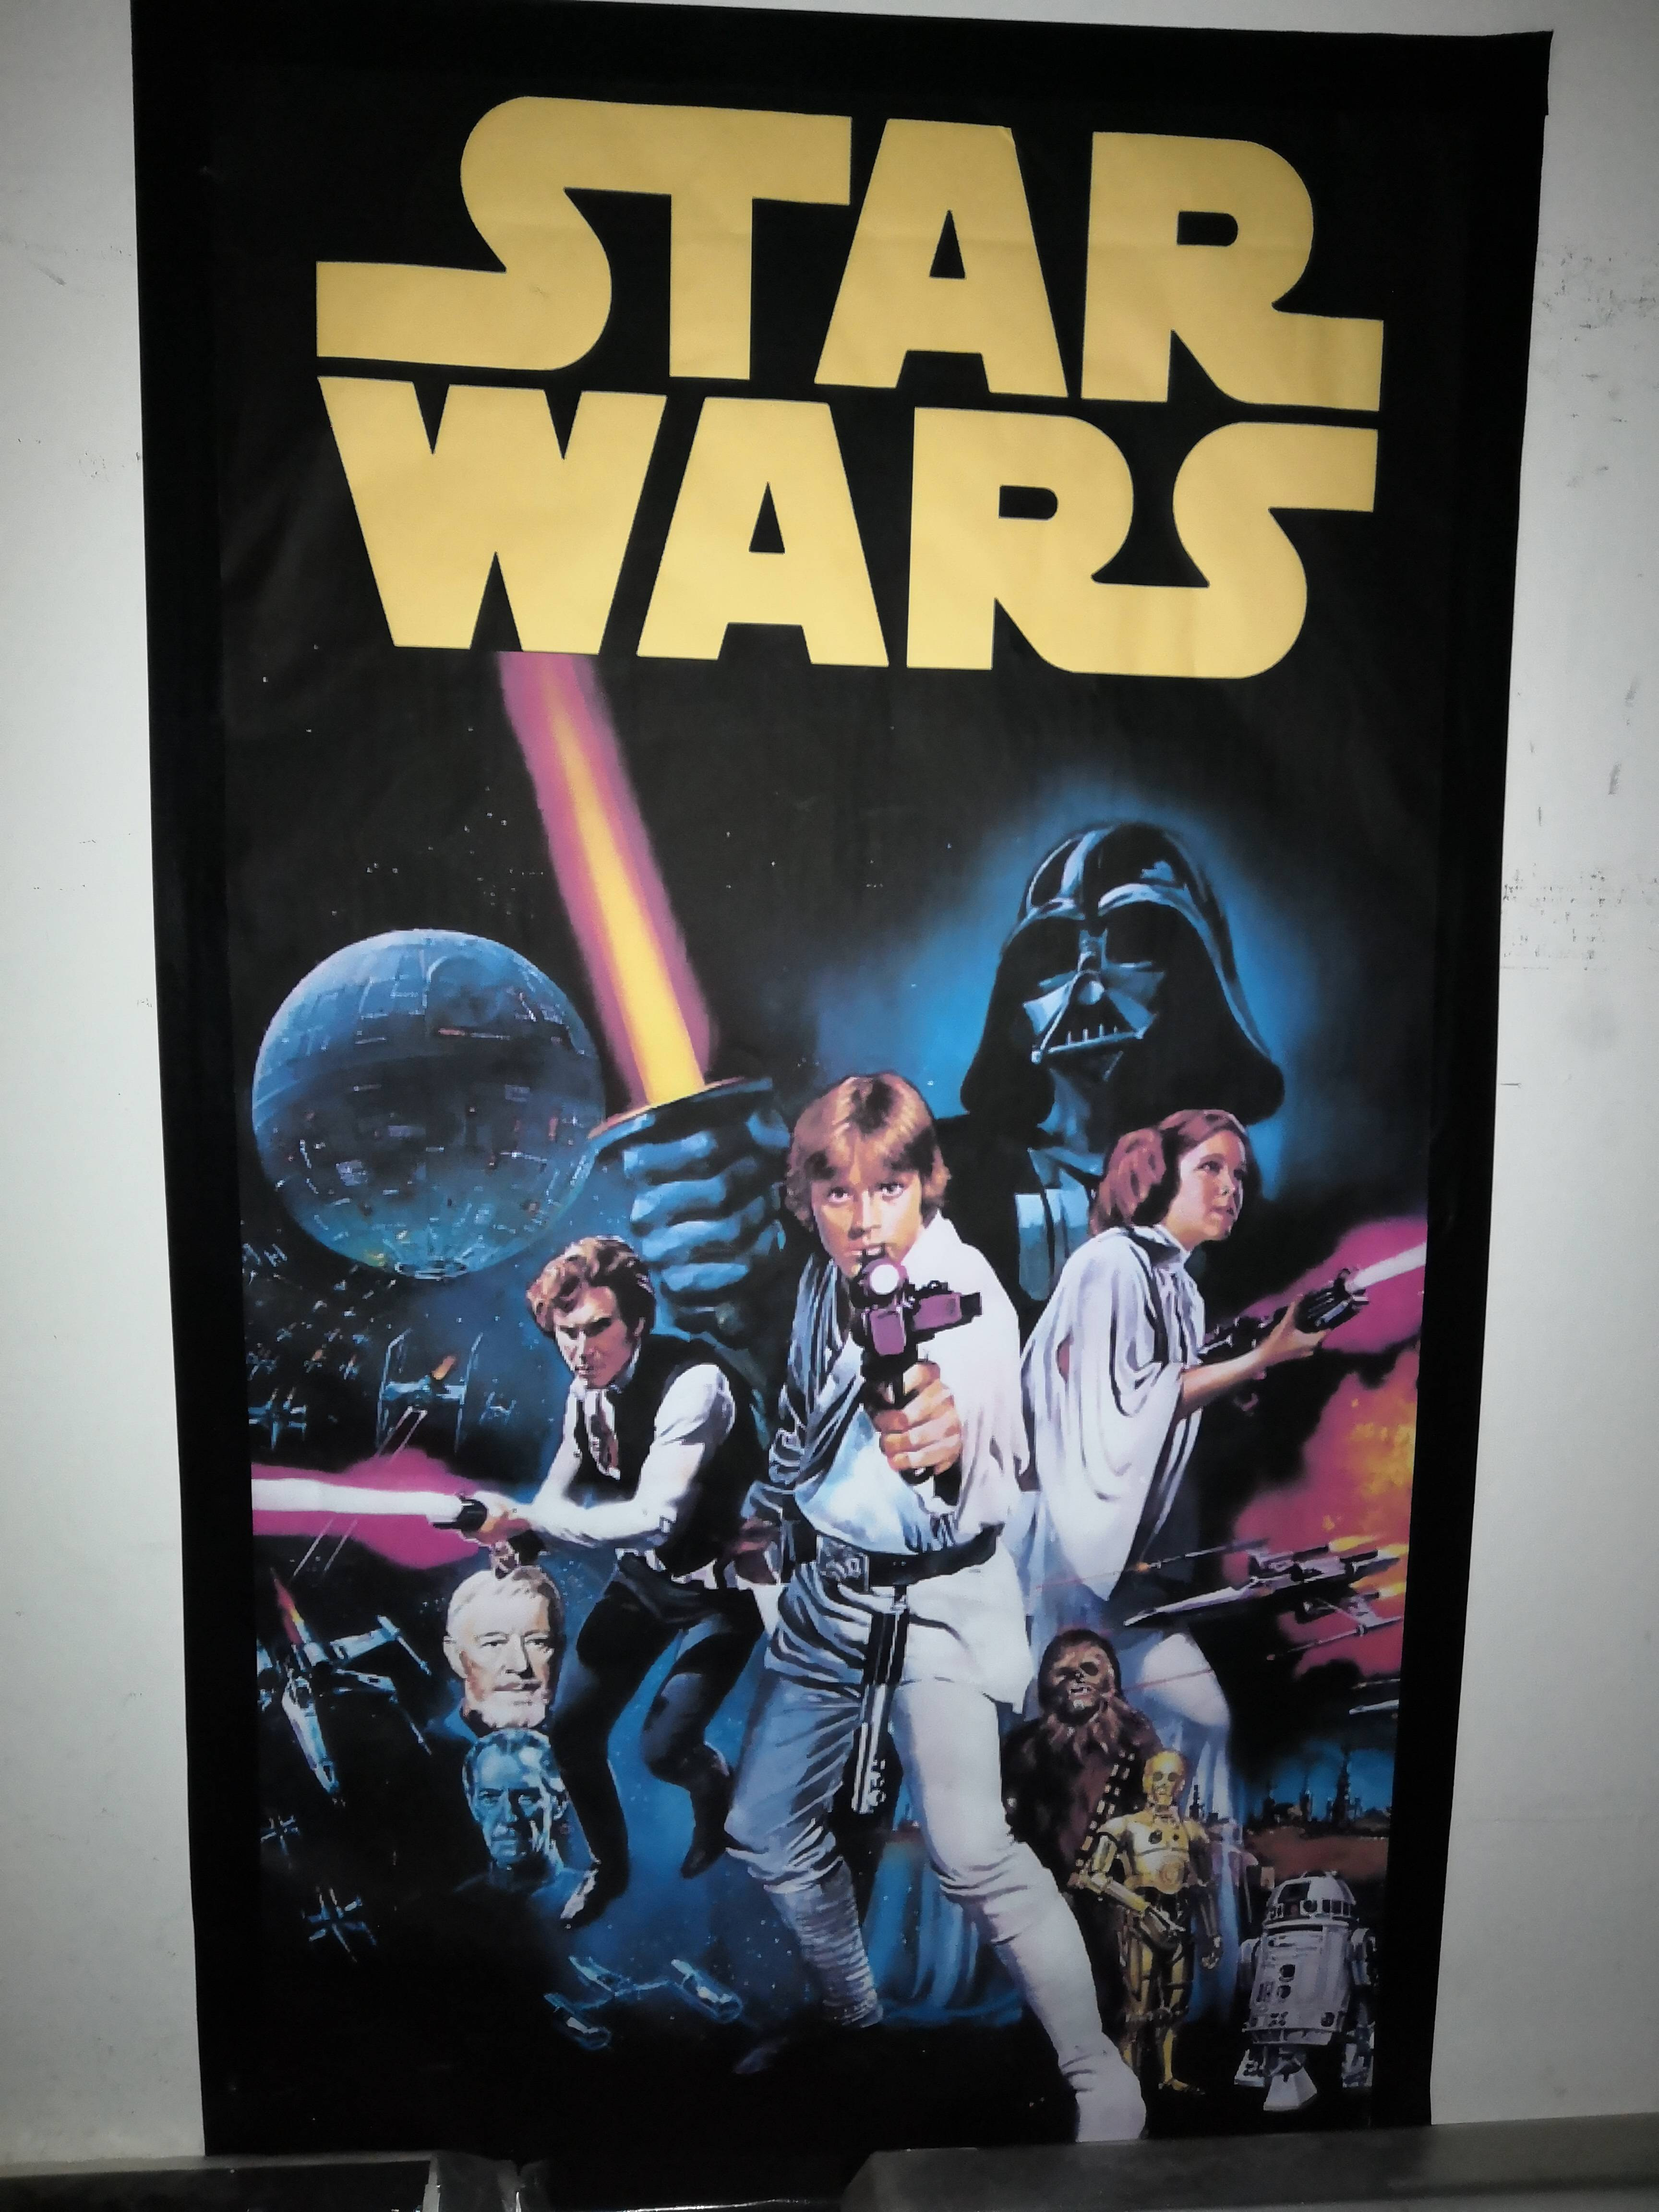 I started working at a cinema recently and found this poster deserted in a back room. Might be an original.